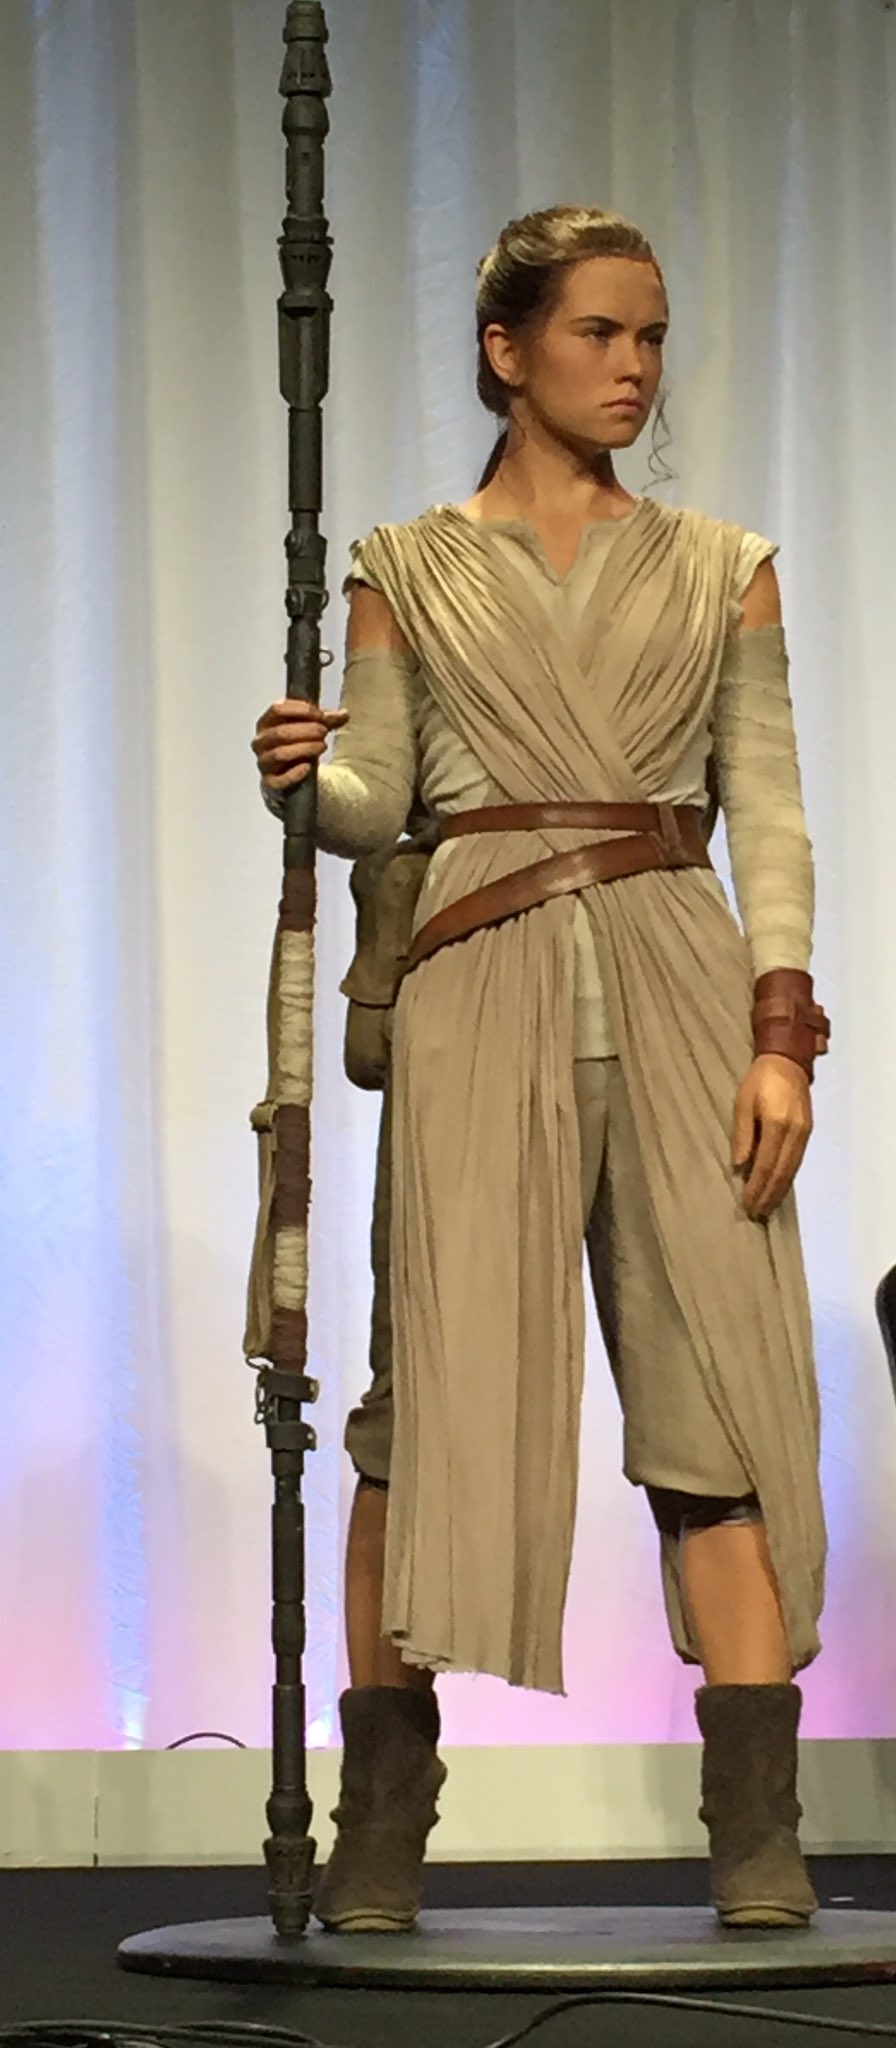 Star-Wars-Madame-Tussauds-Rey